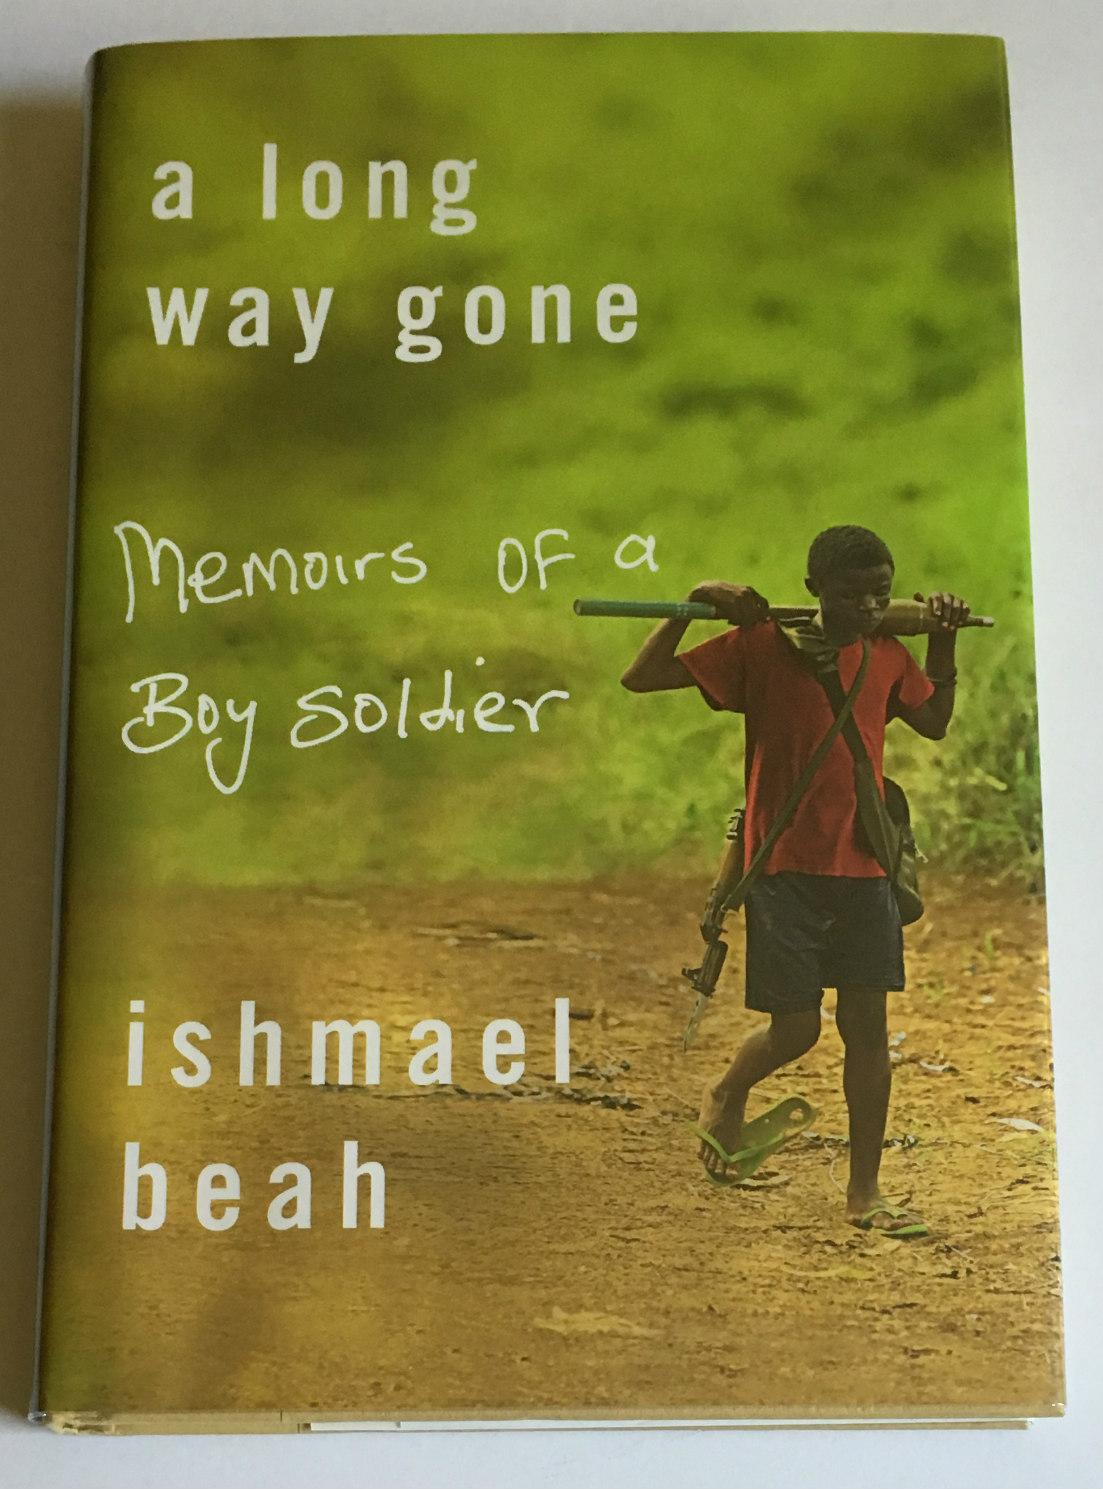 a long way gone ishmael beah violence Ishmael beah refers to memories throughout a long way gone, relayed as flashbacks in difficult times, he clings to moments from happier years - especially those occurring before his parents' divorce.